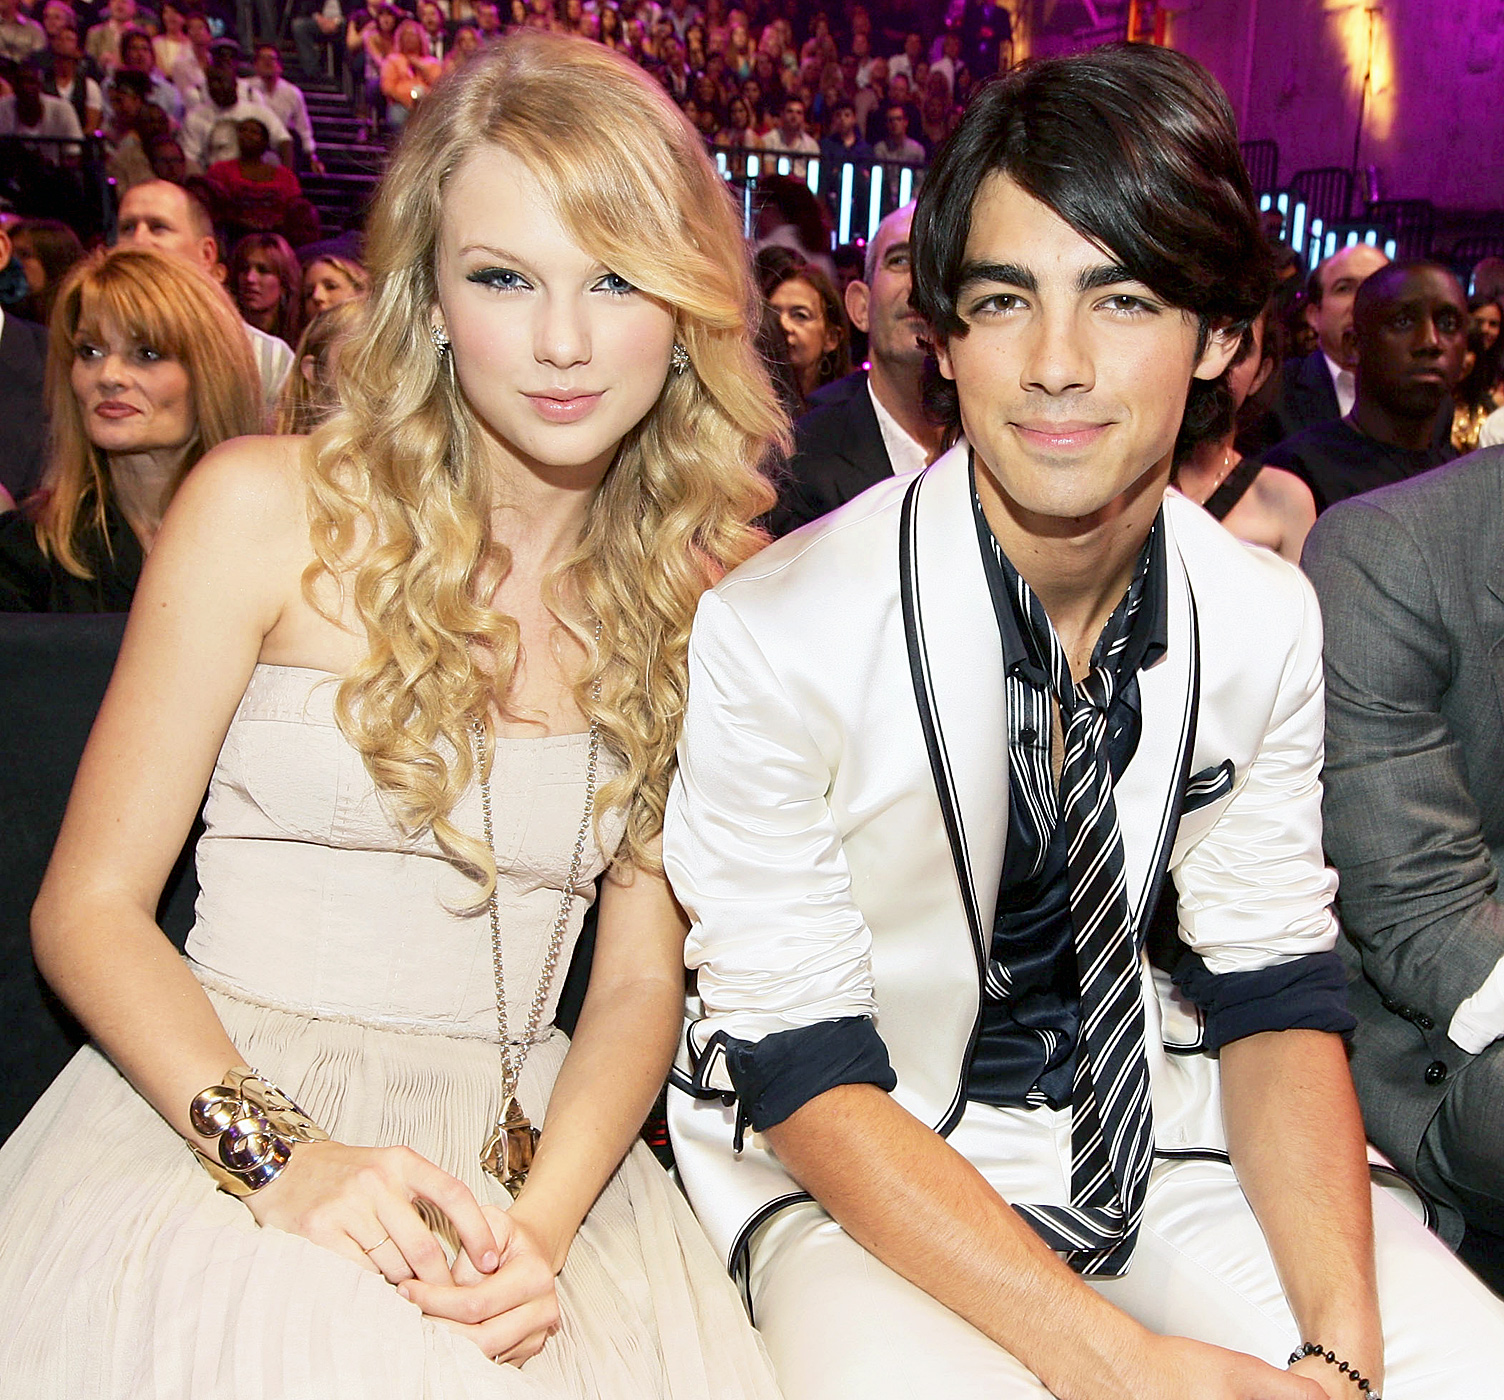 """The Disney heartthrob ended their relationship in a 27-second phone call in October 2008. """"That's got to be a record,"""" Swift told Ellen DeGeneres ."""